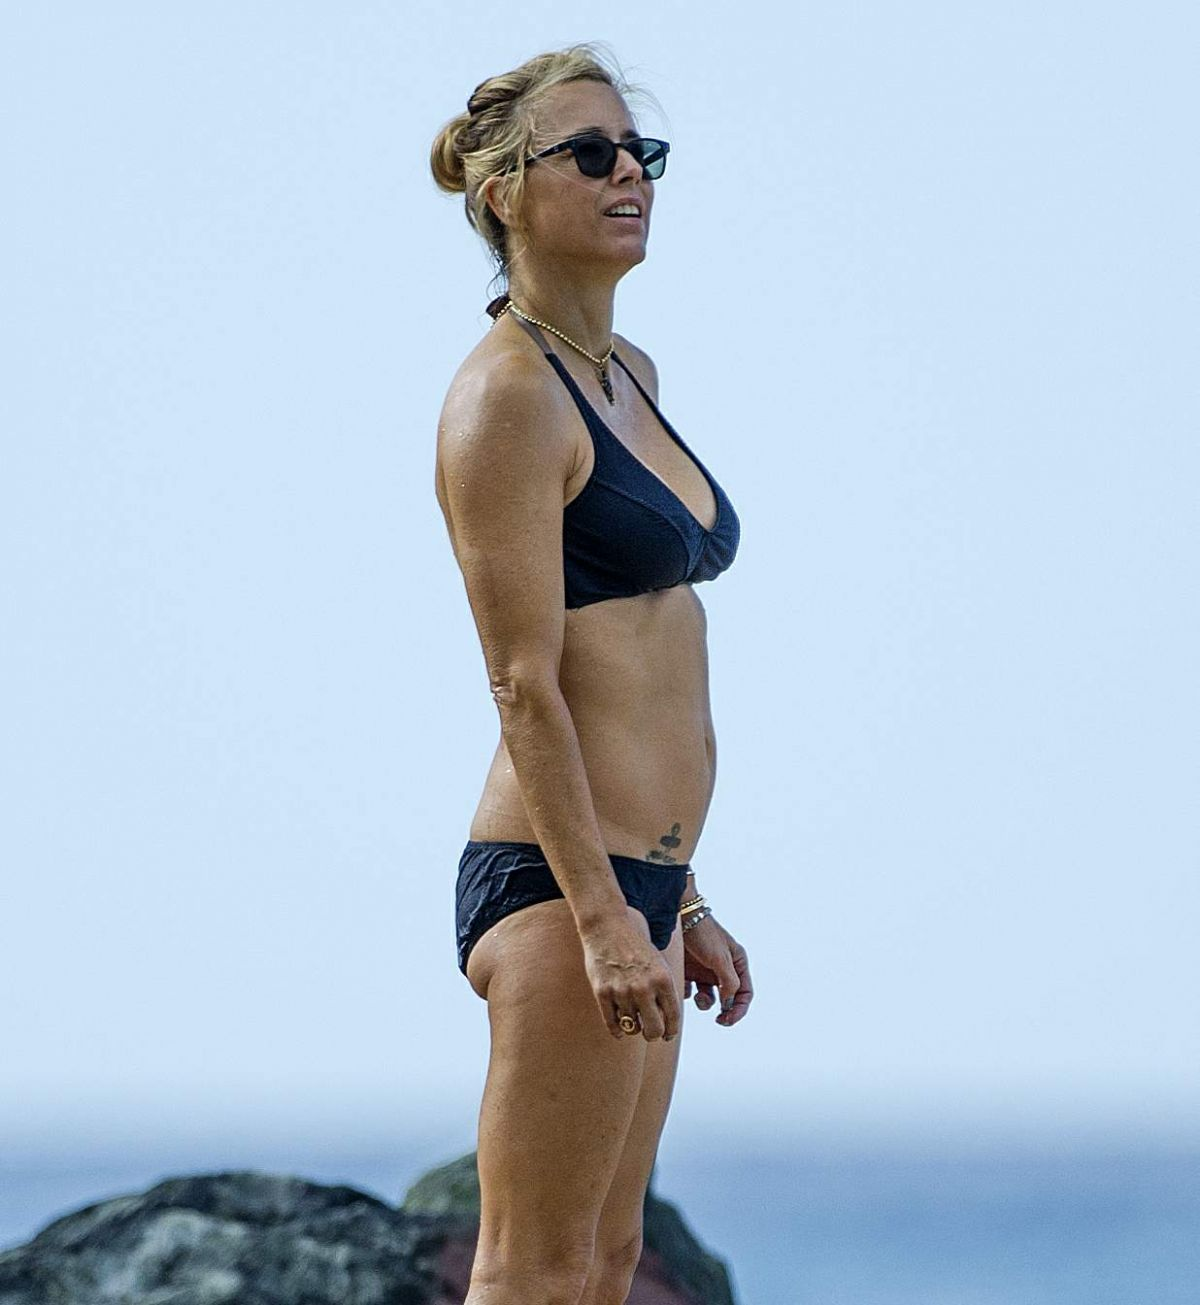 Bikini Tea Leoni nude photos 2019